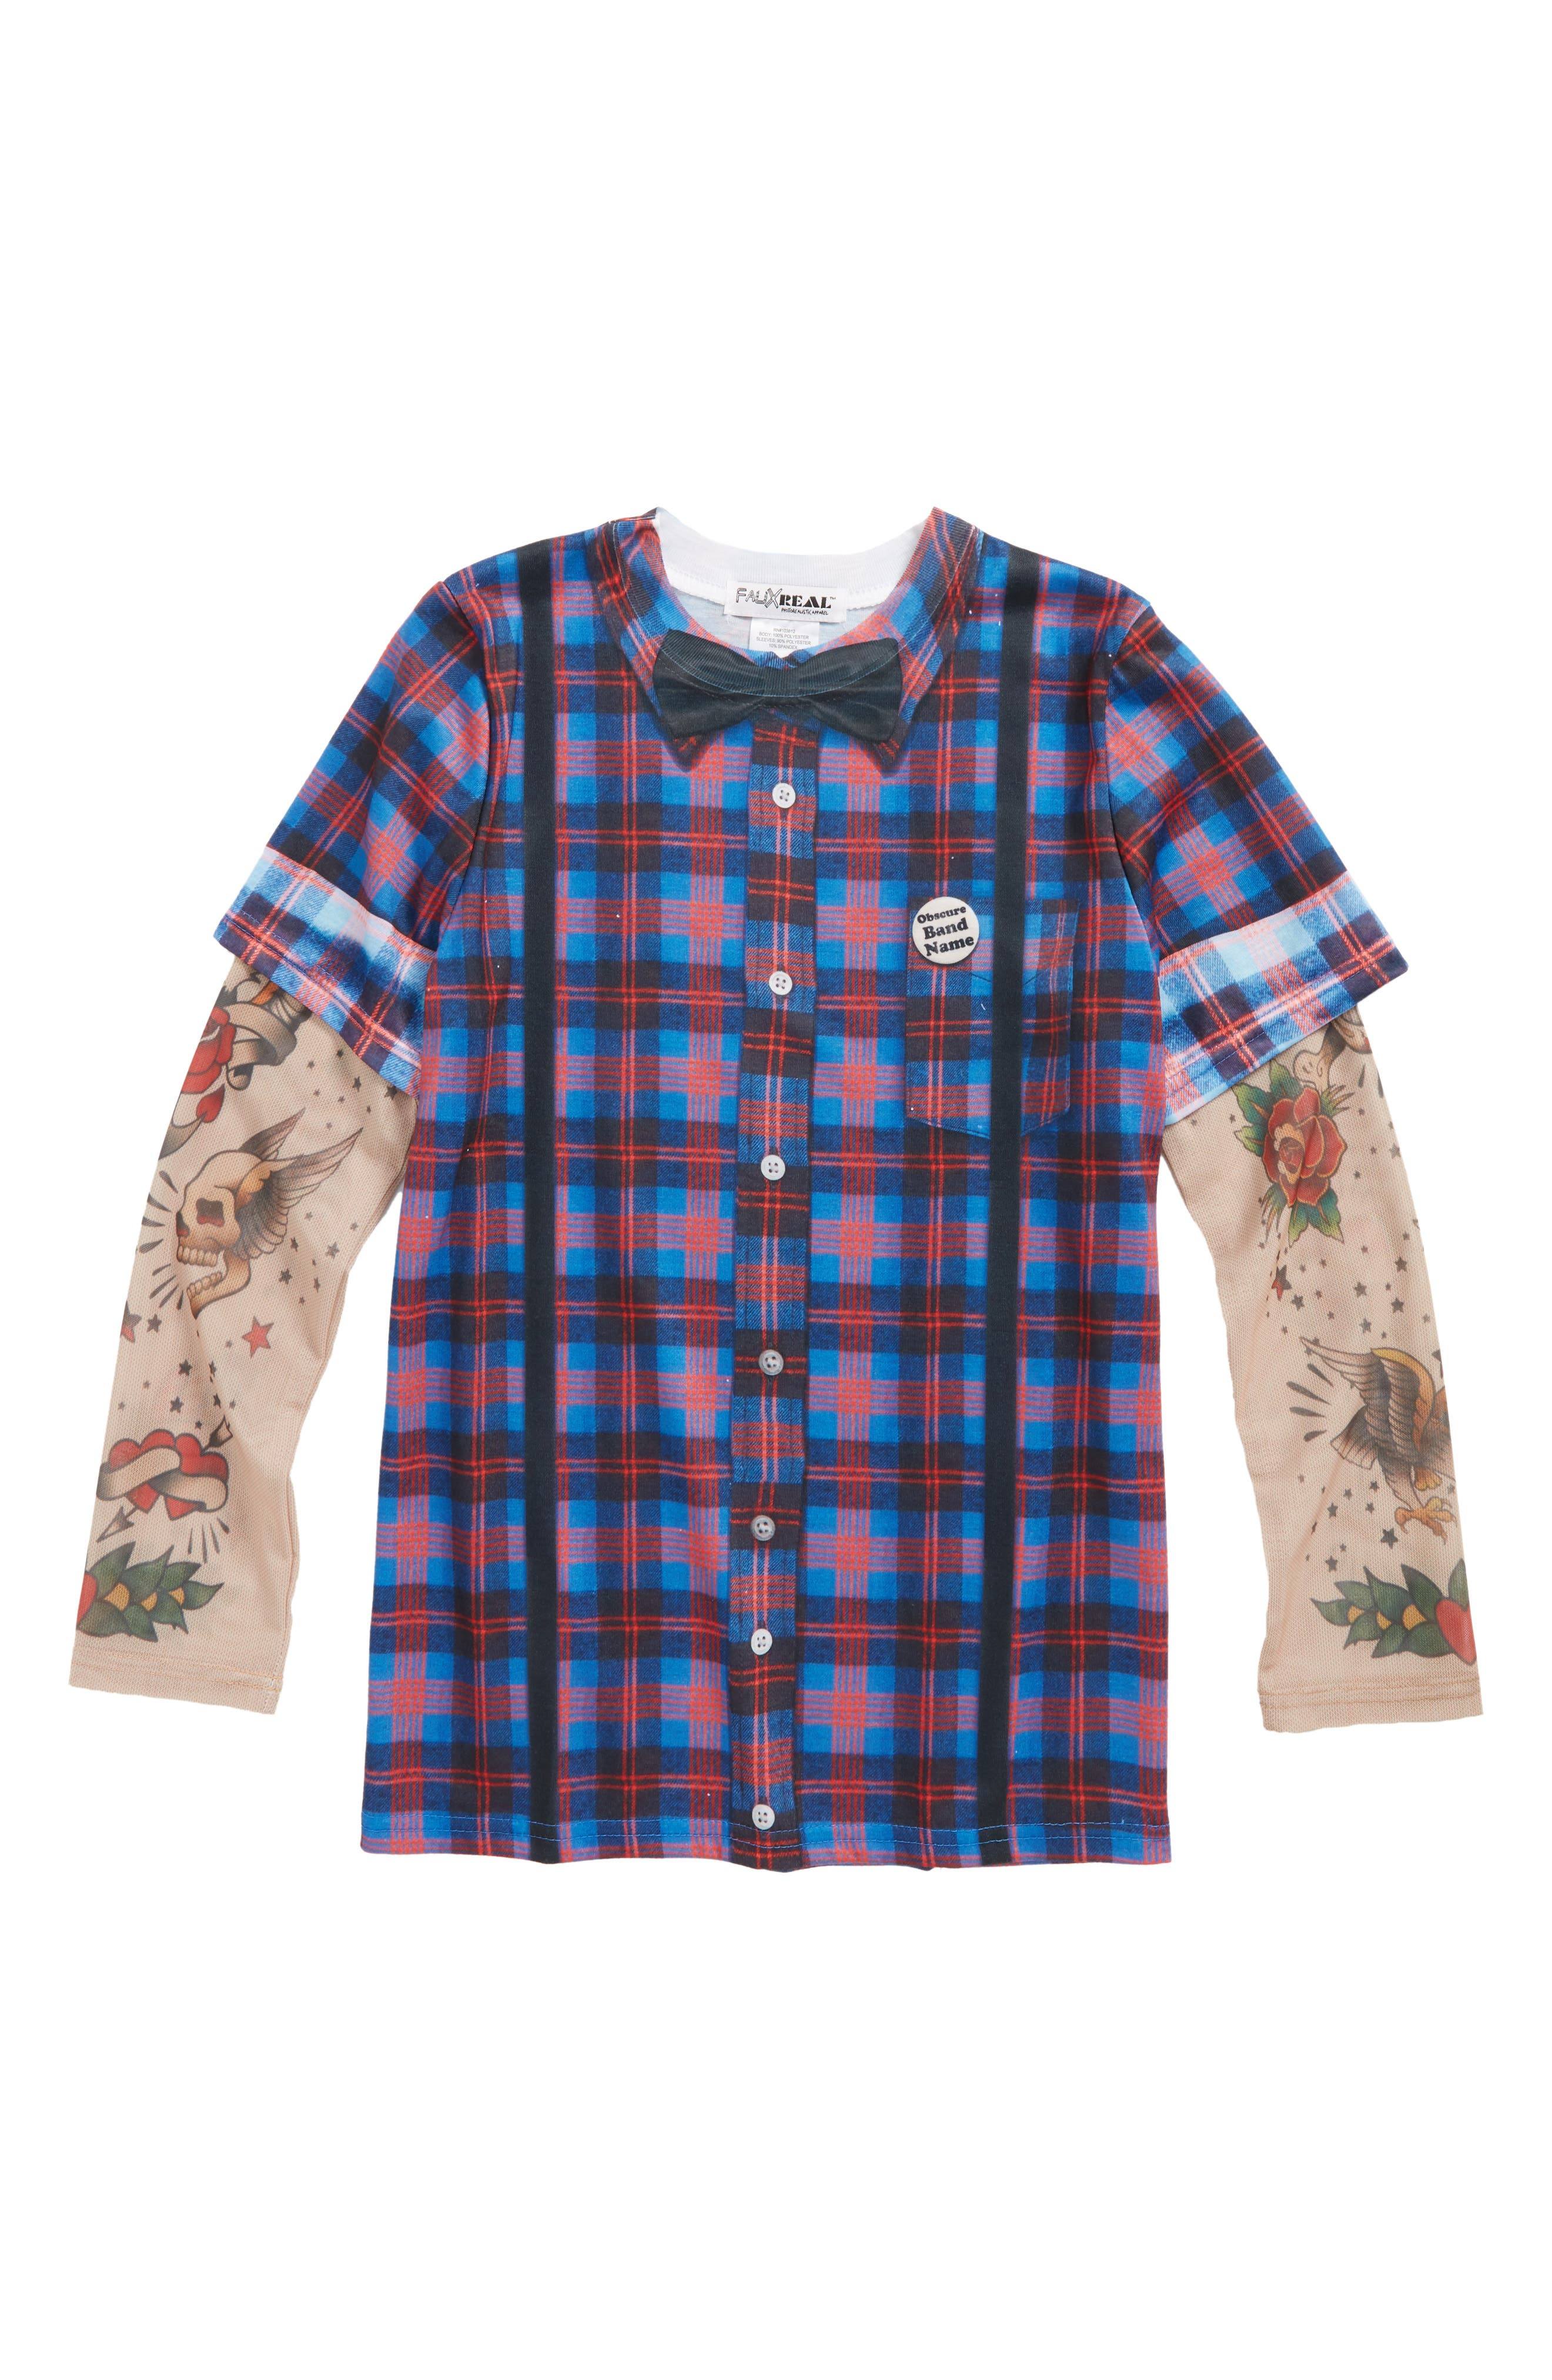 Main Image - Faux Real Hipster Bow Tie & Suspender Print T-Shirt with Tattoo Print Sleeves (Little Boys & Big Boys)